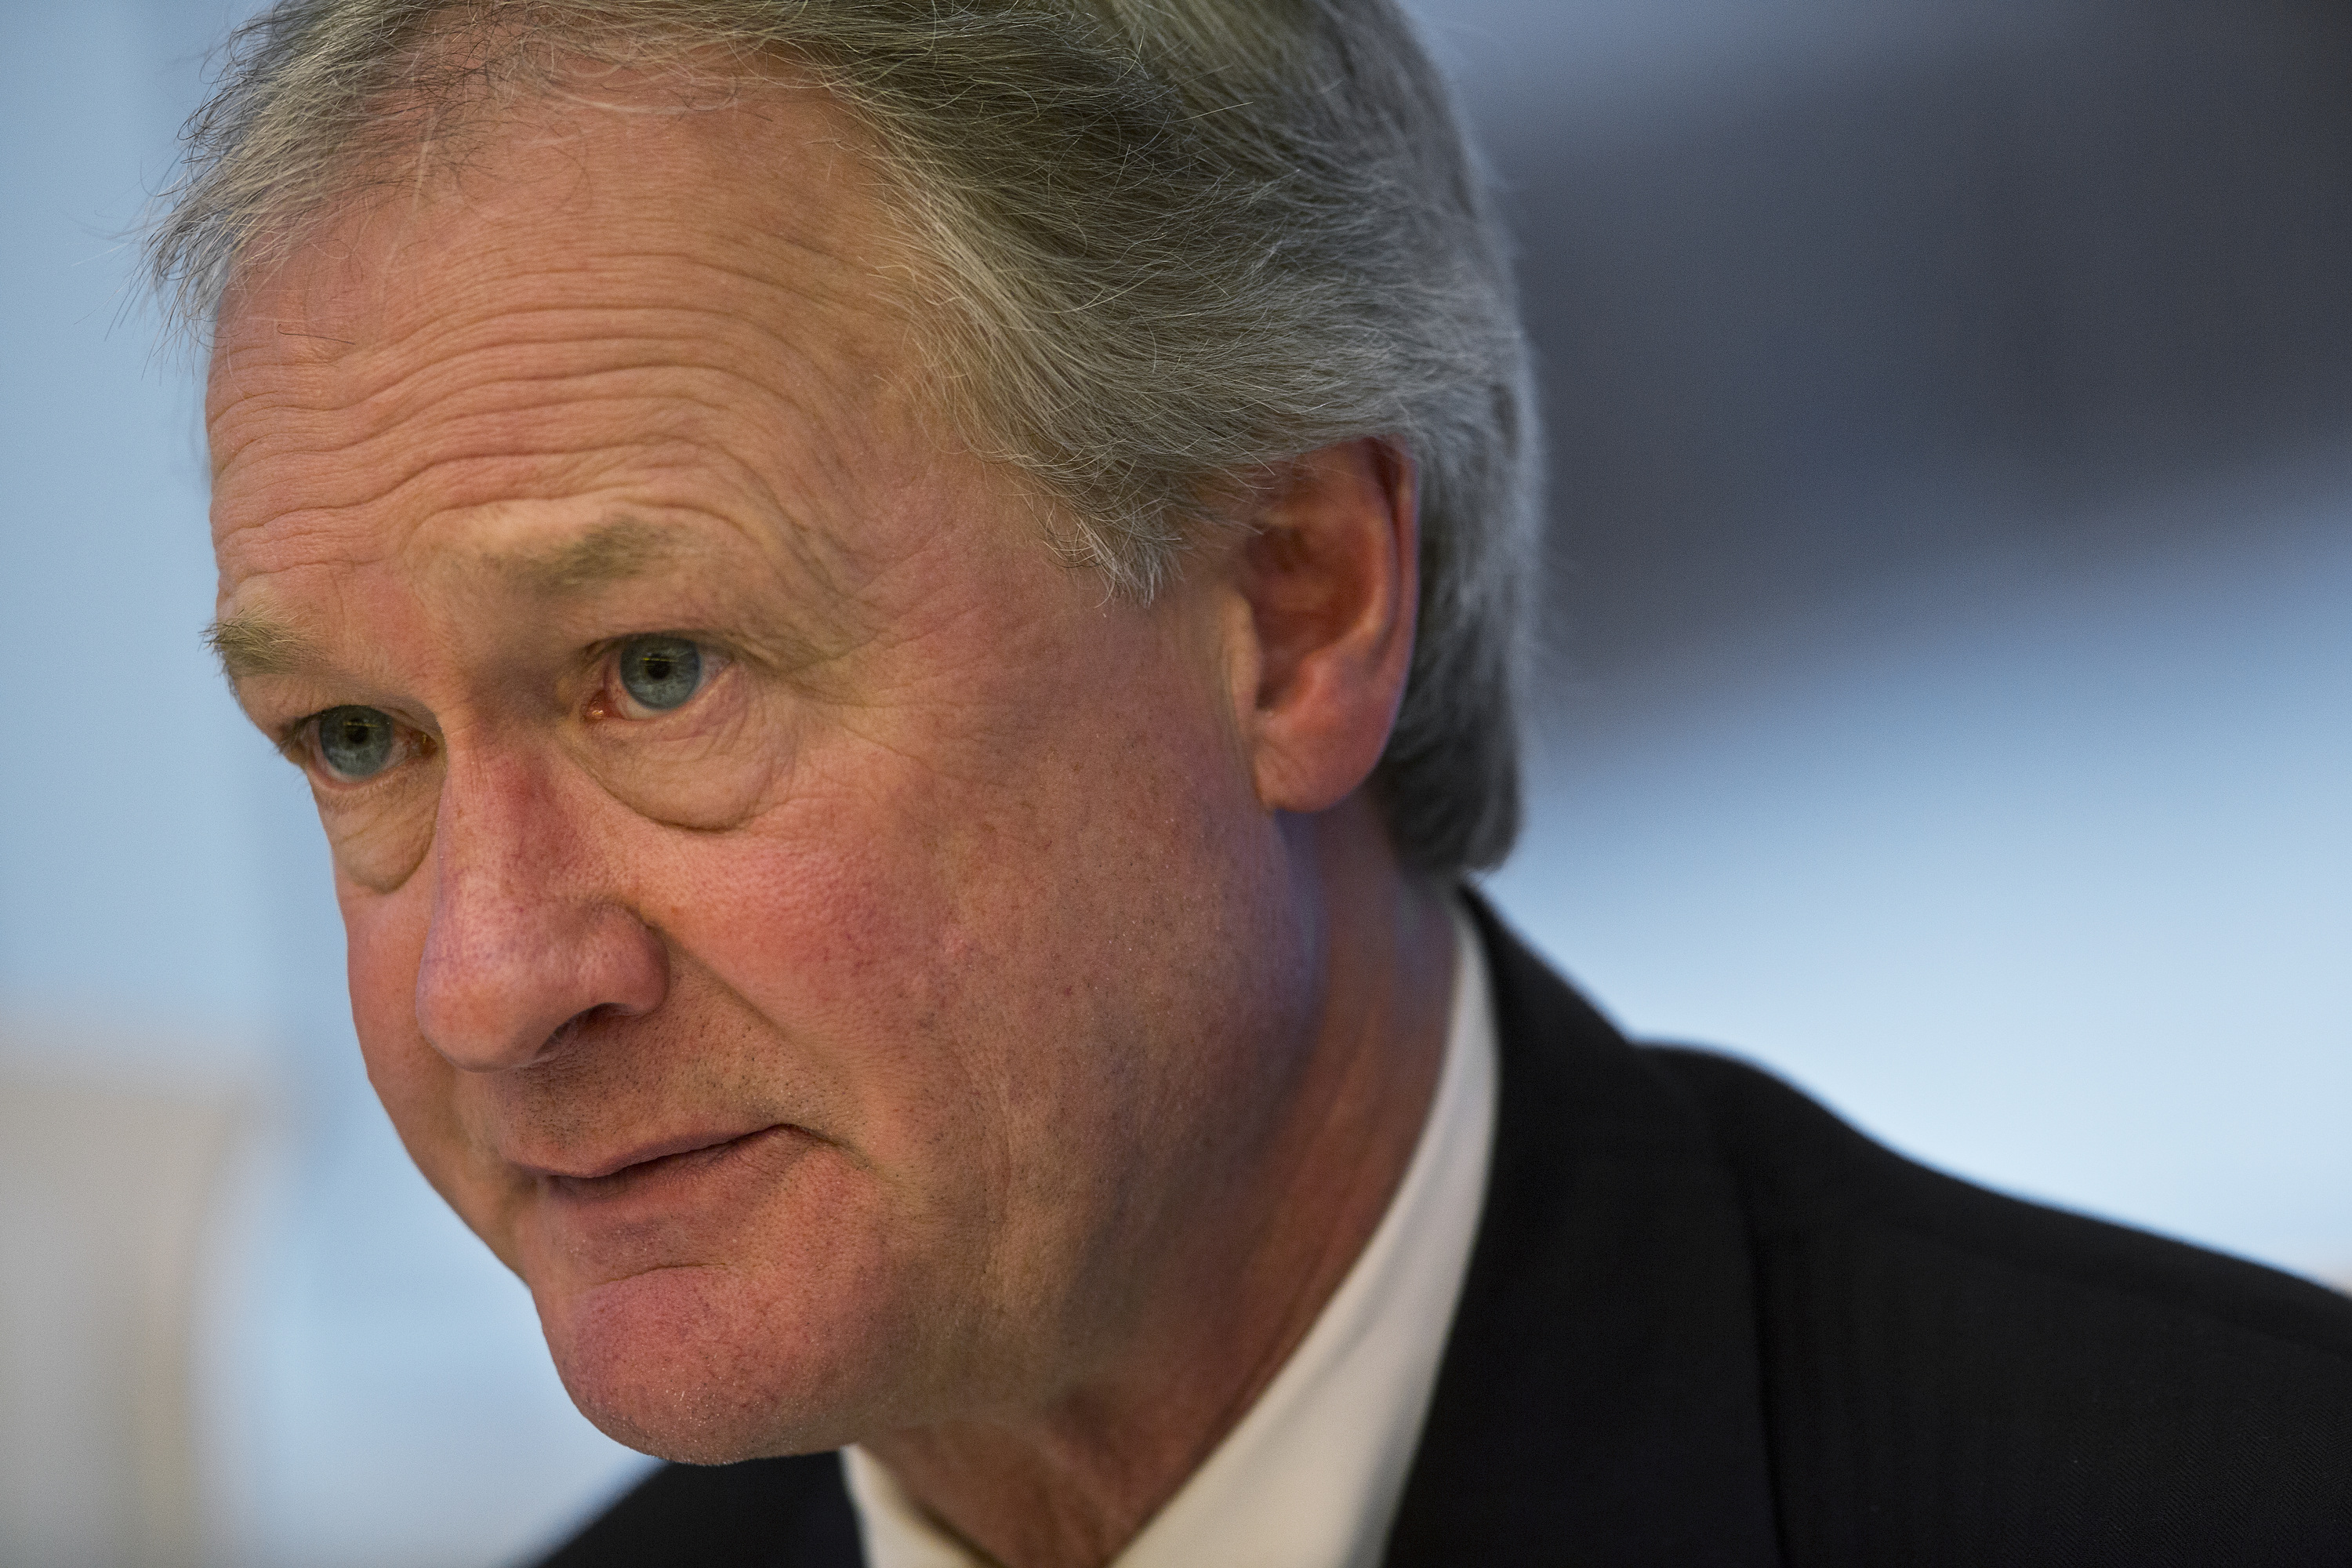 Lincoln Chafee, governor of Rhode Island, speaks during an interview in New York, U.S., on Monday, April 29, 2013.